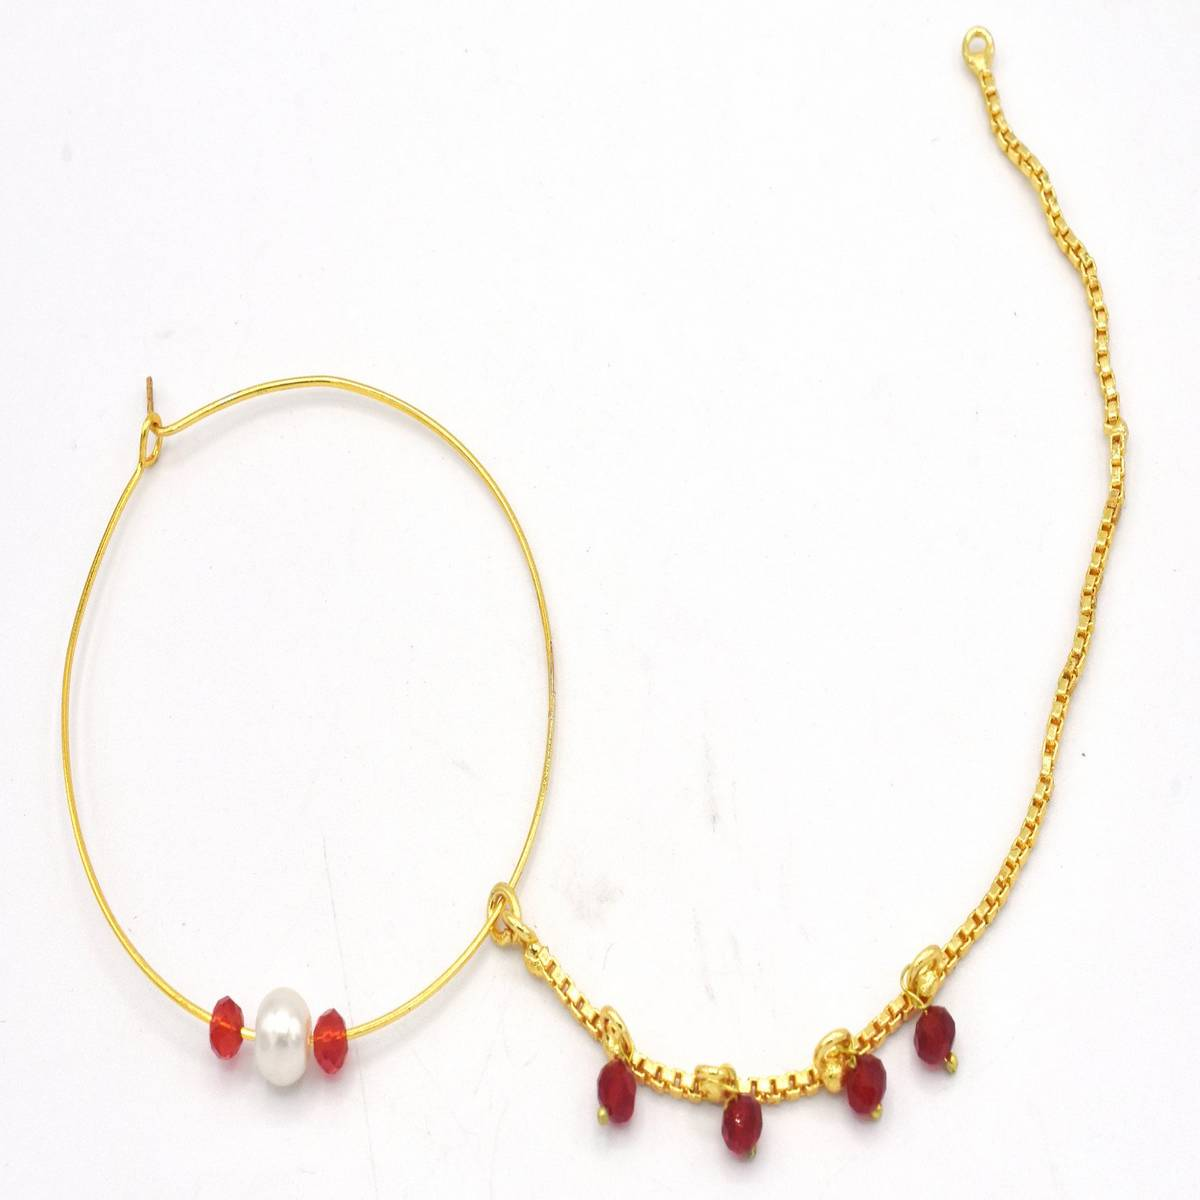 Golden Chain Nose Ring Nath for Women